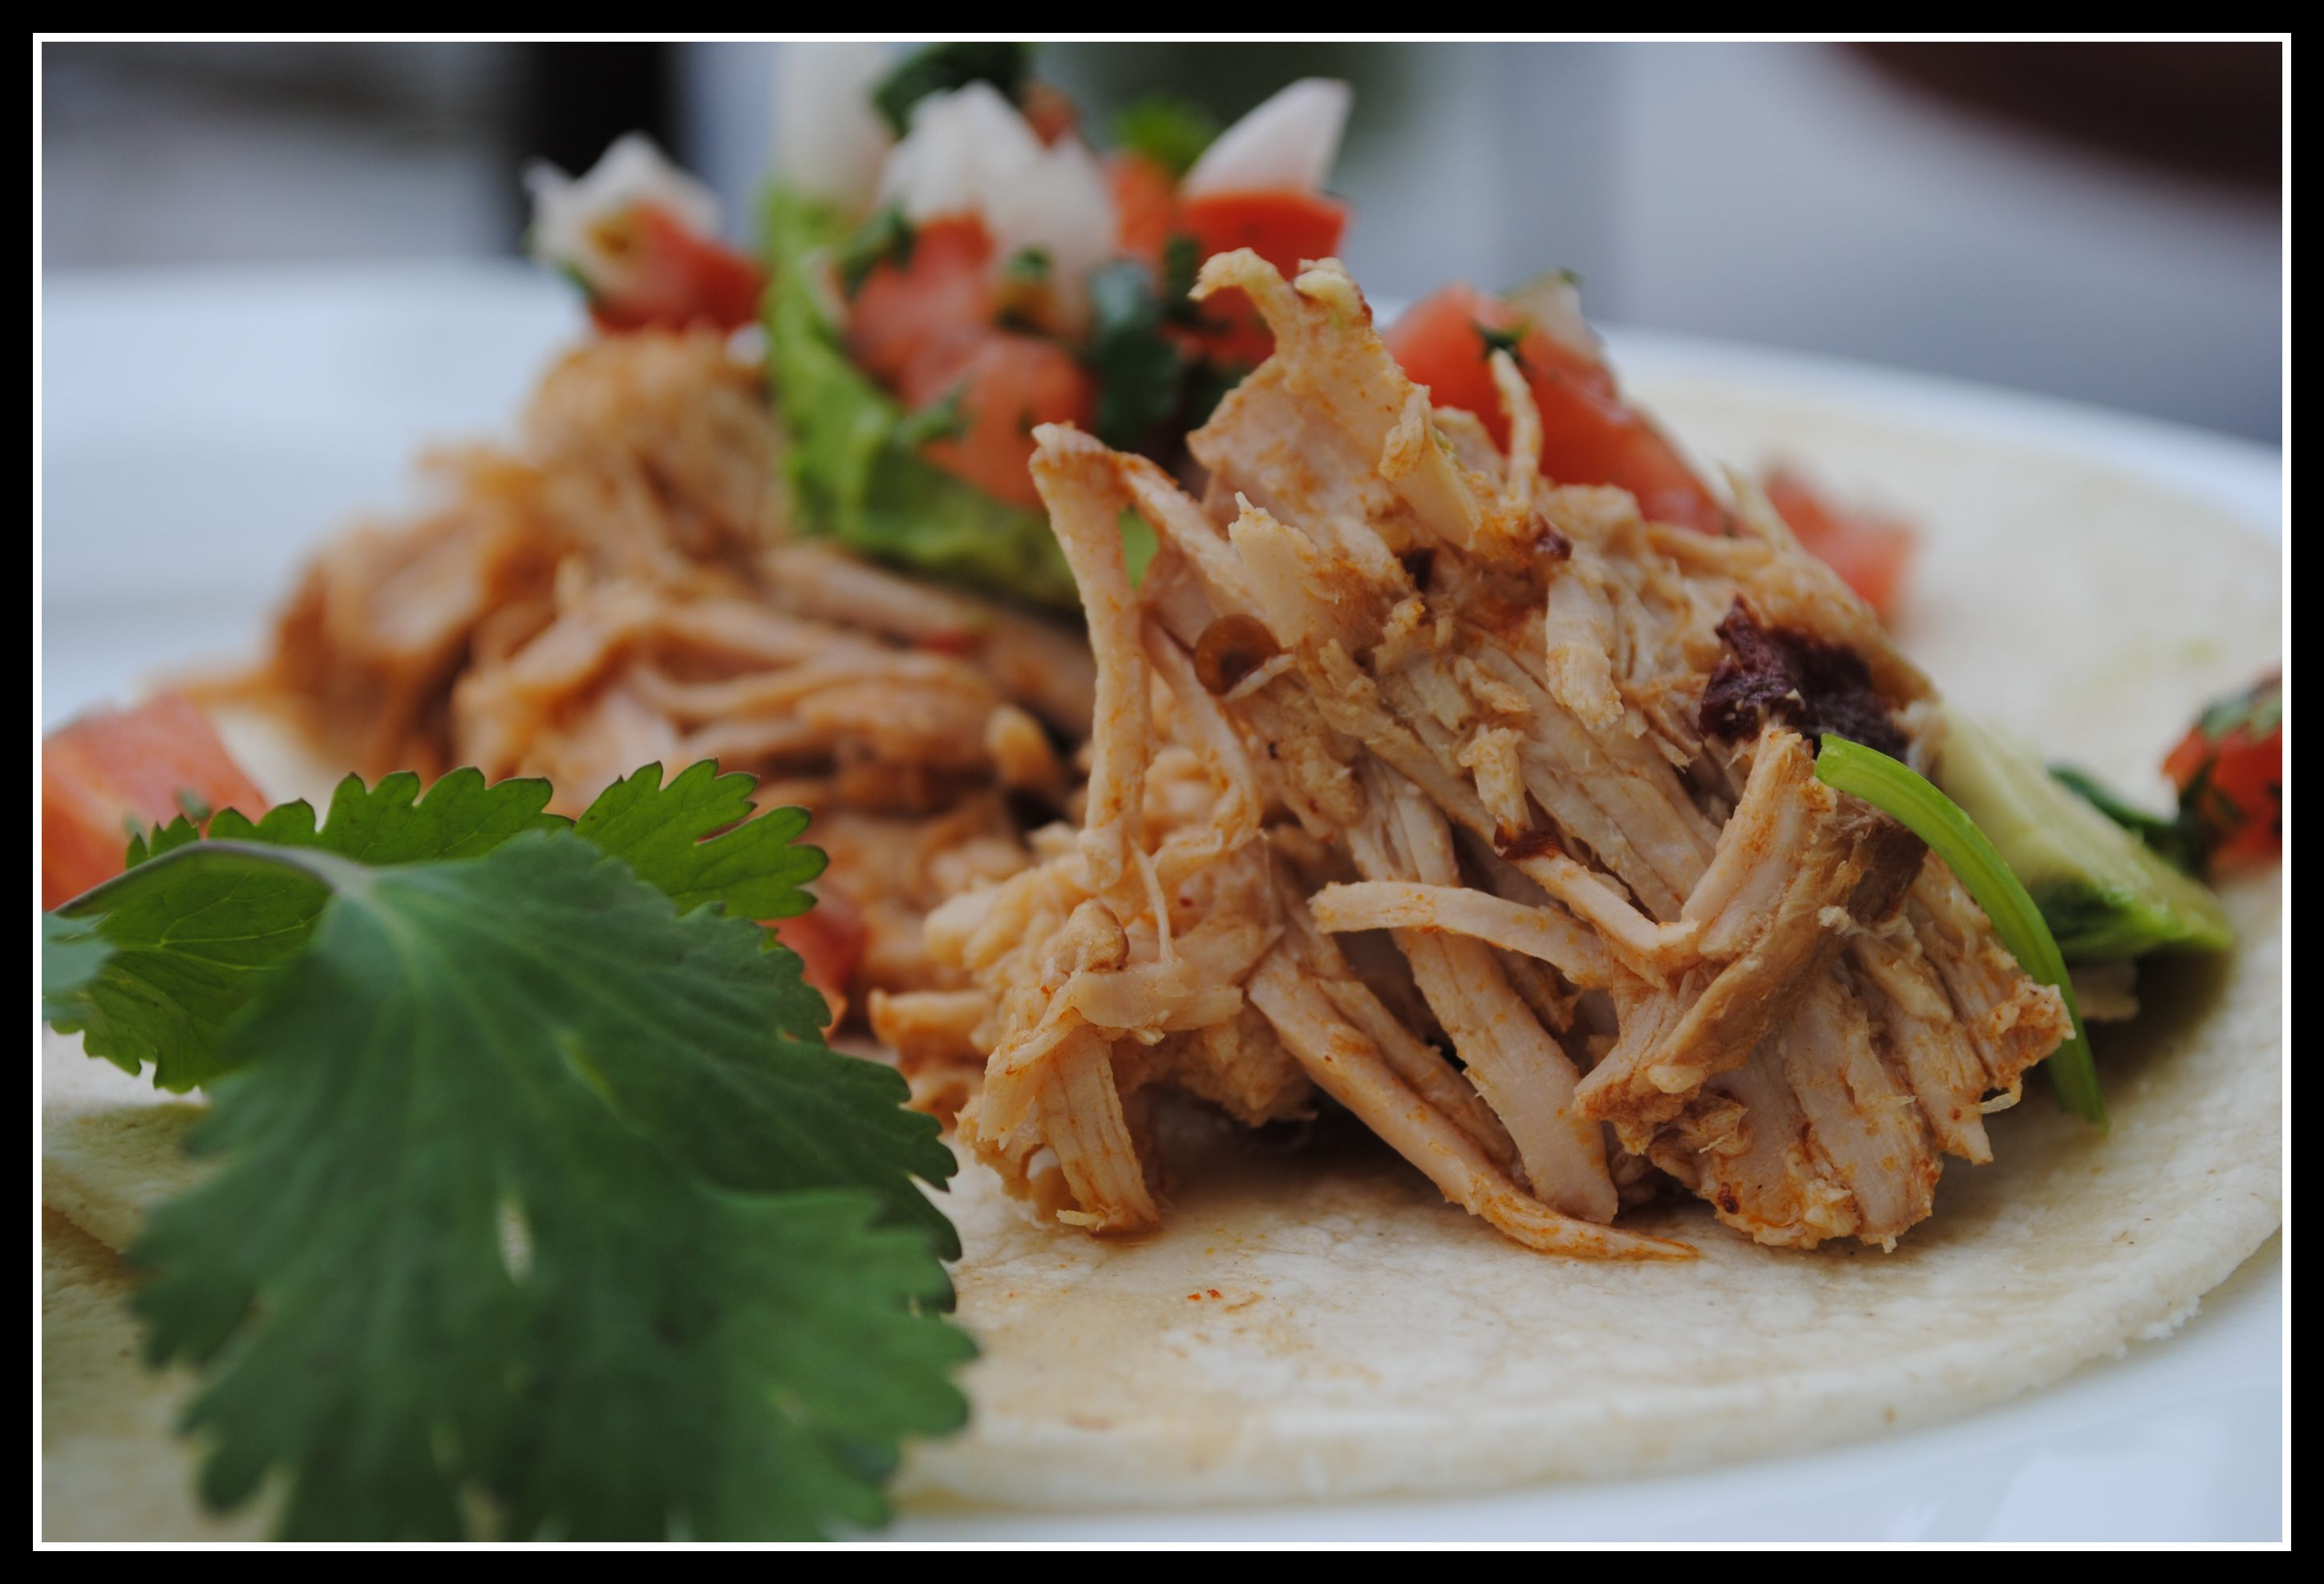 Slow Cooked Pork Carnitas (Mexican Pulled Pork)